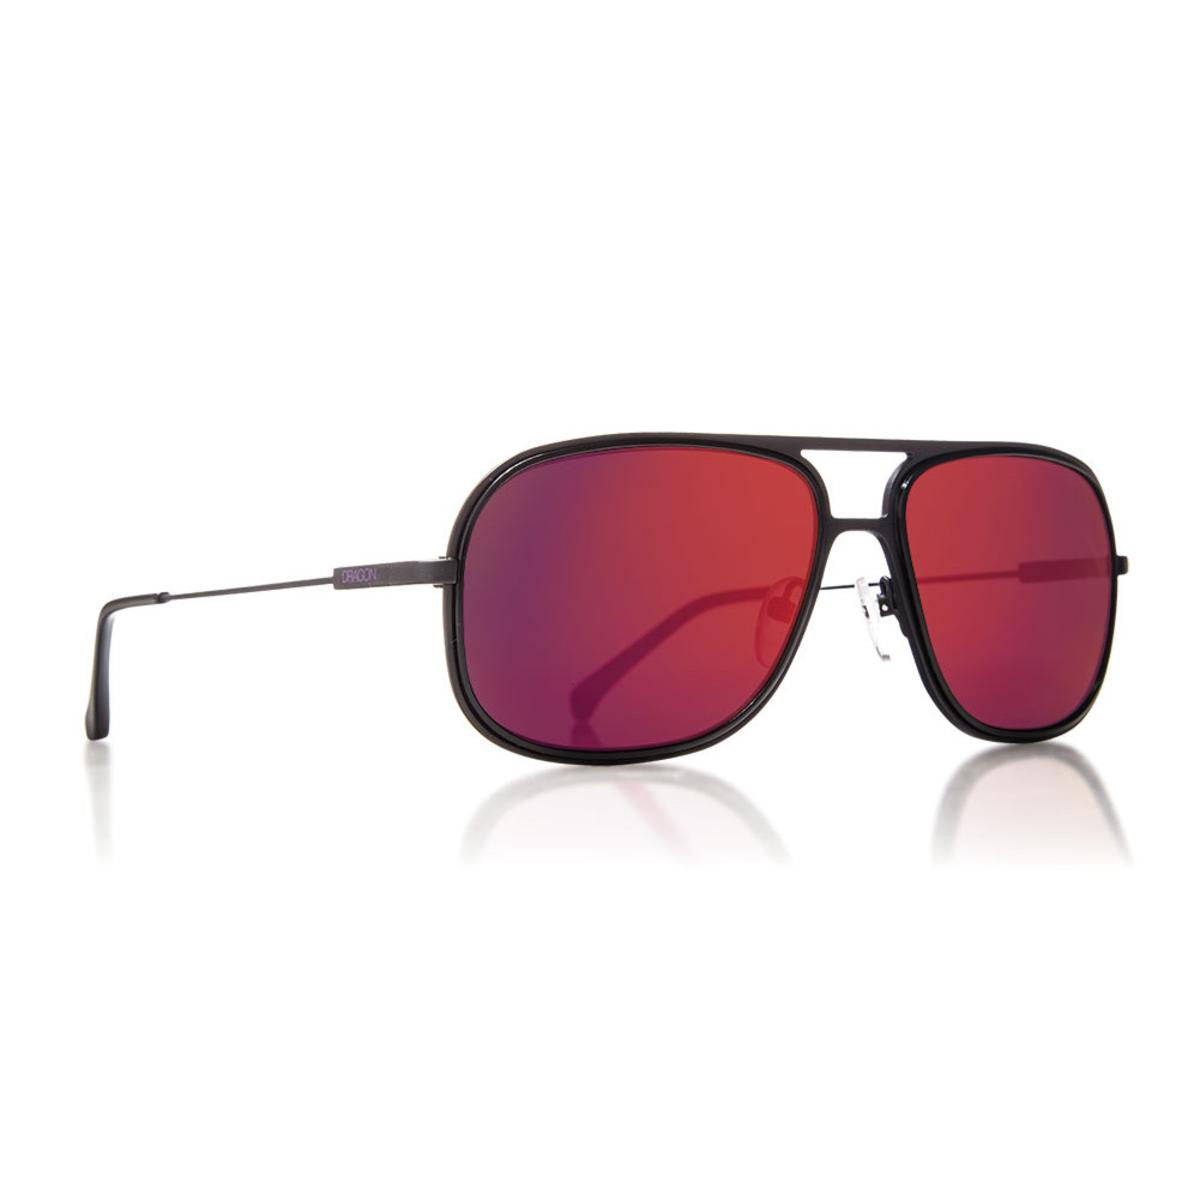 Dragon B - Class Sunglasses New